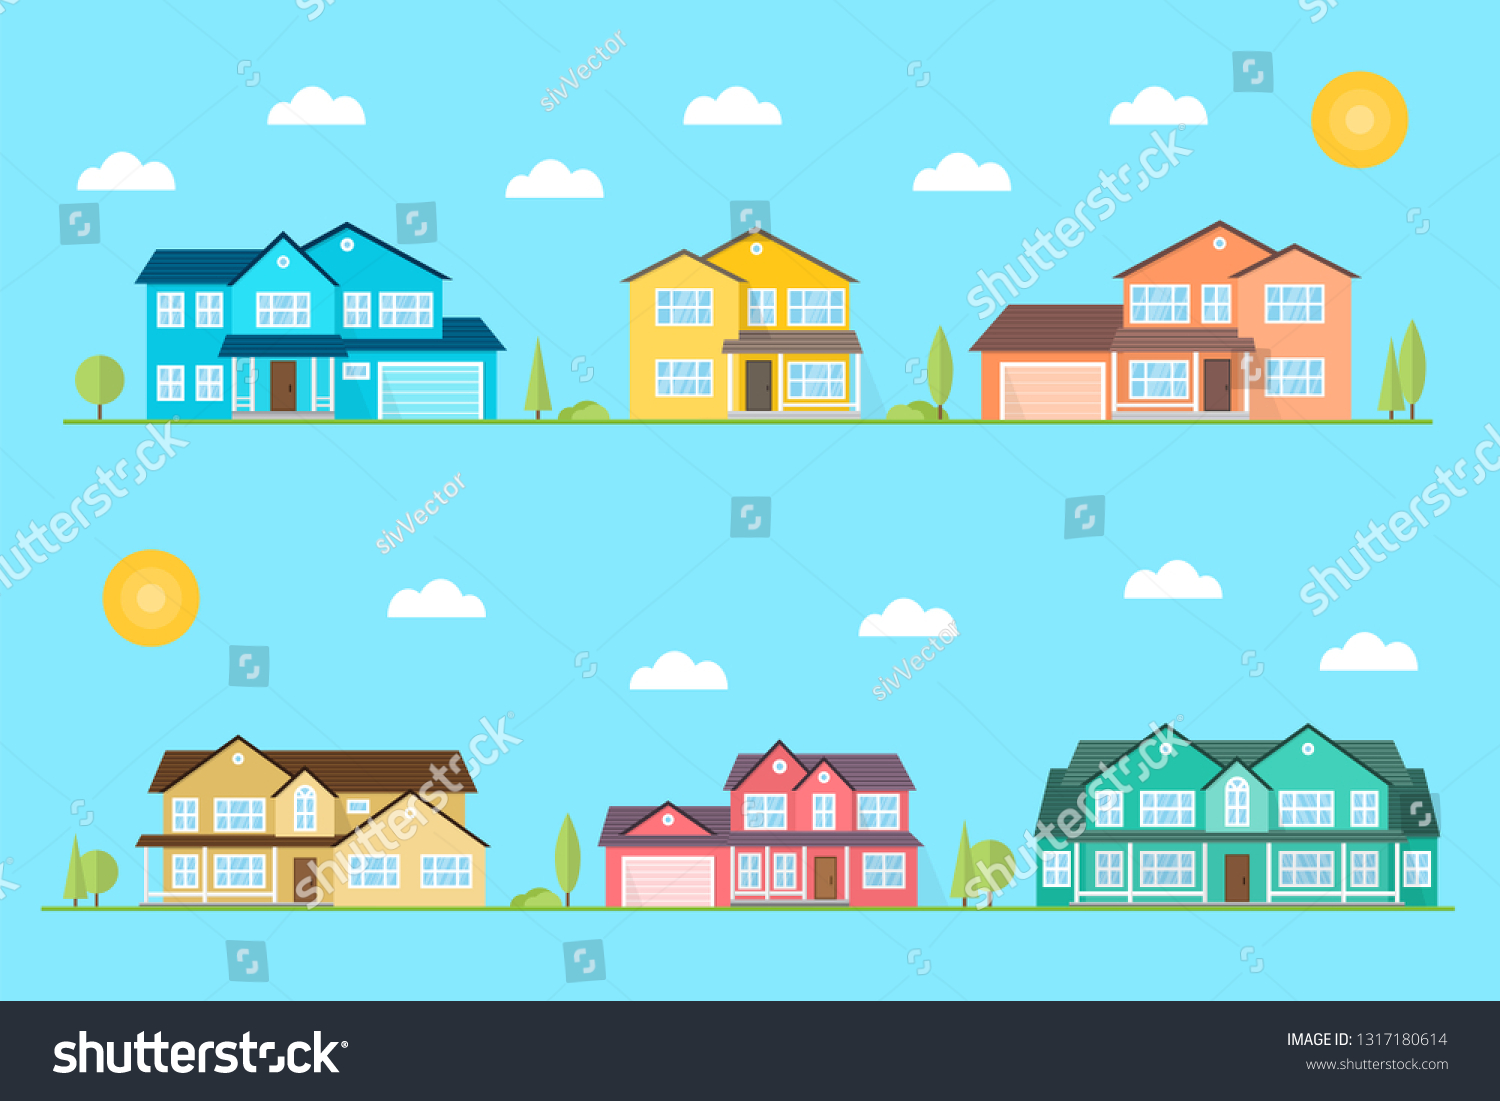 Neighborhood Homes Illustrated On Blue Background Stock Vector 1500x1101